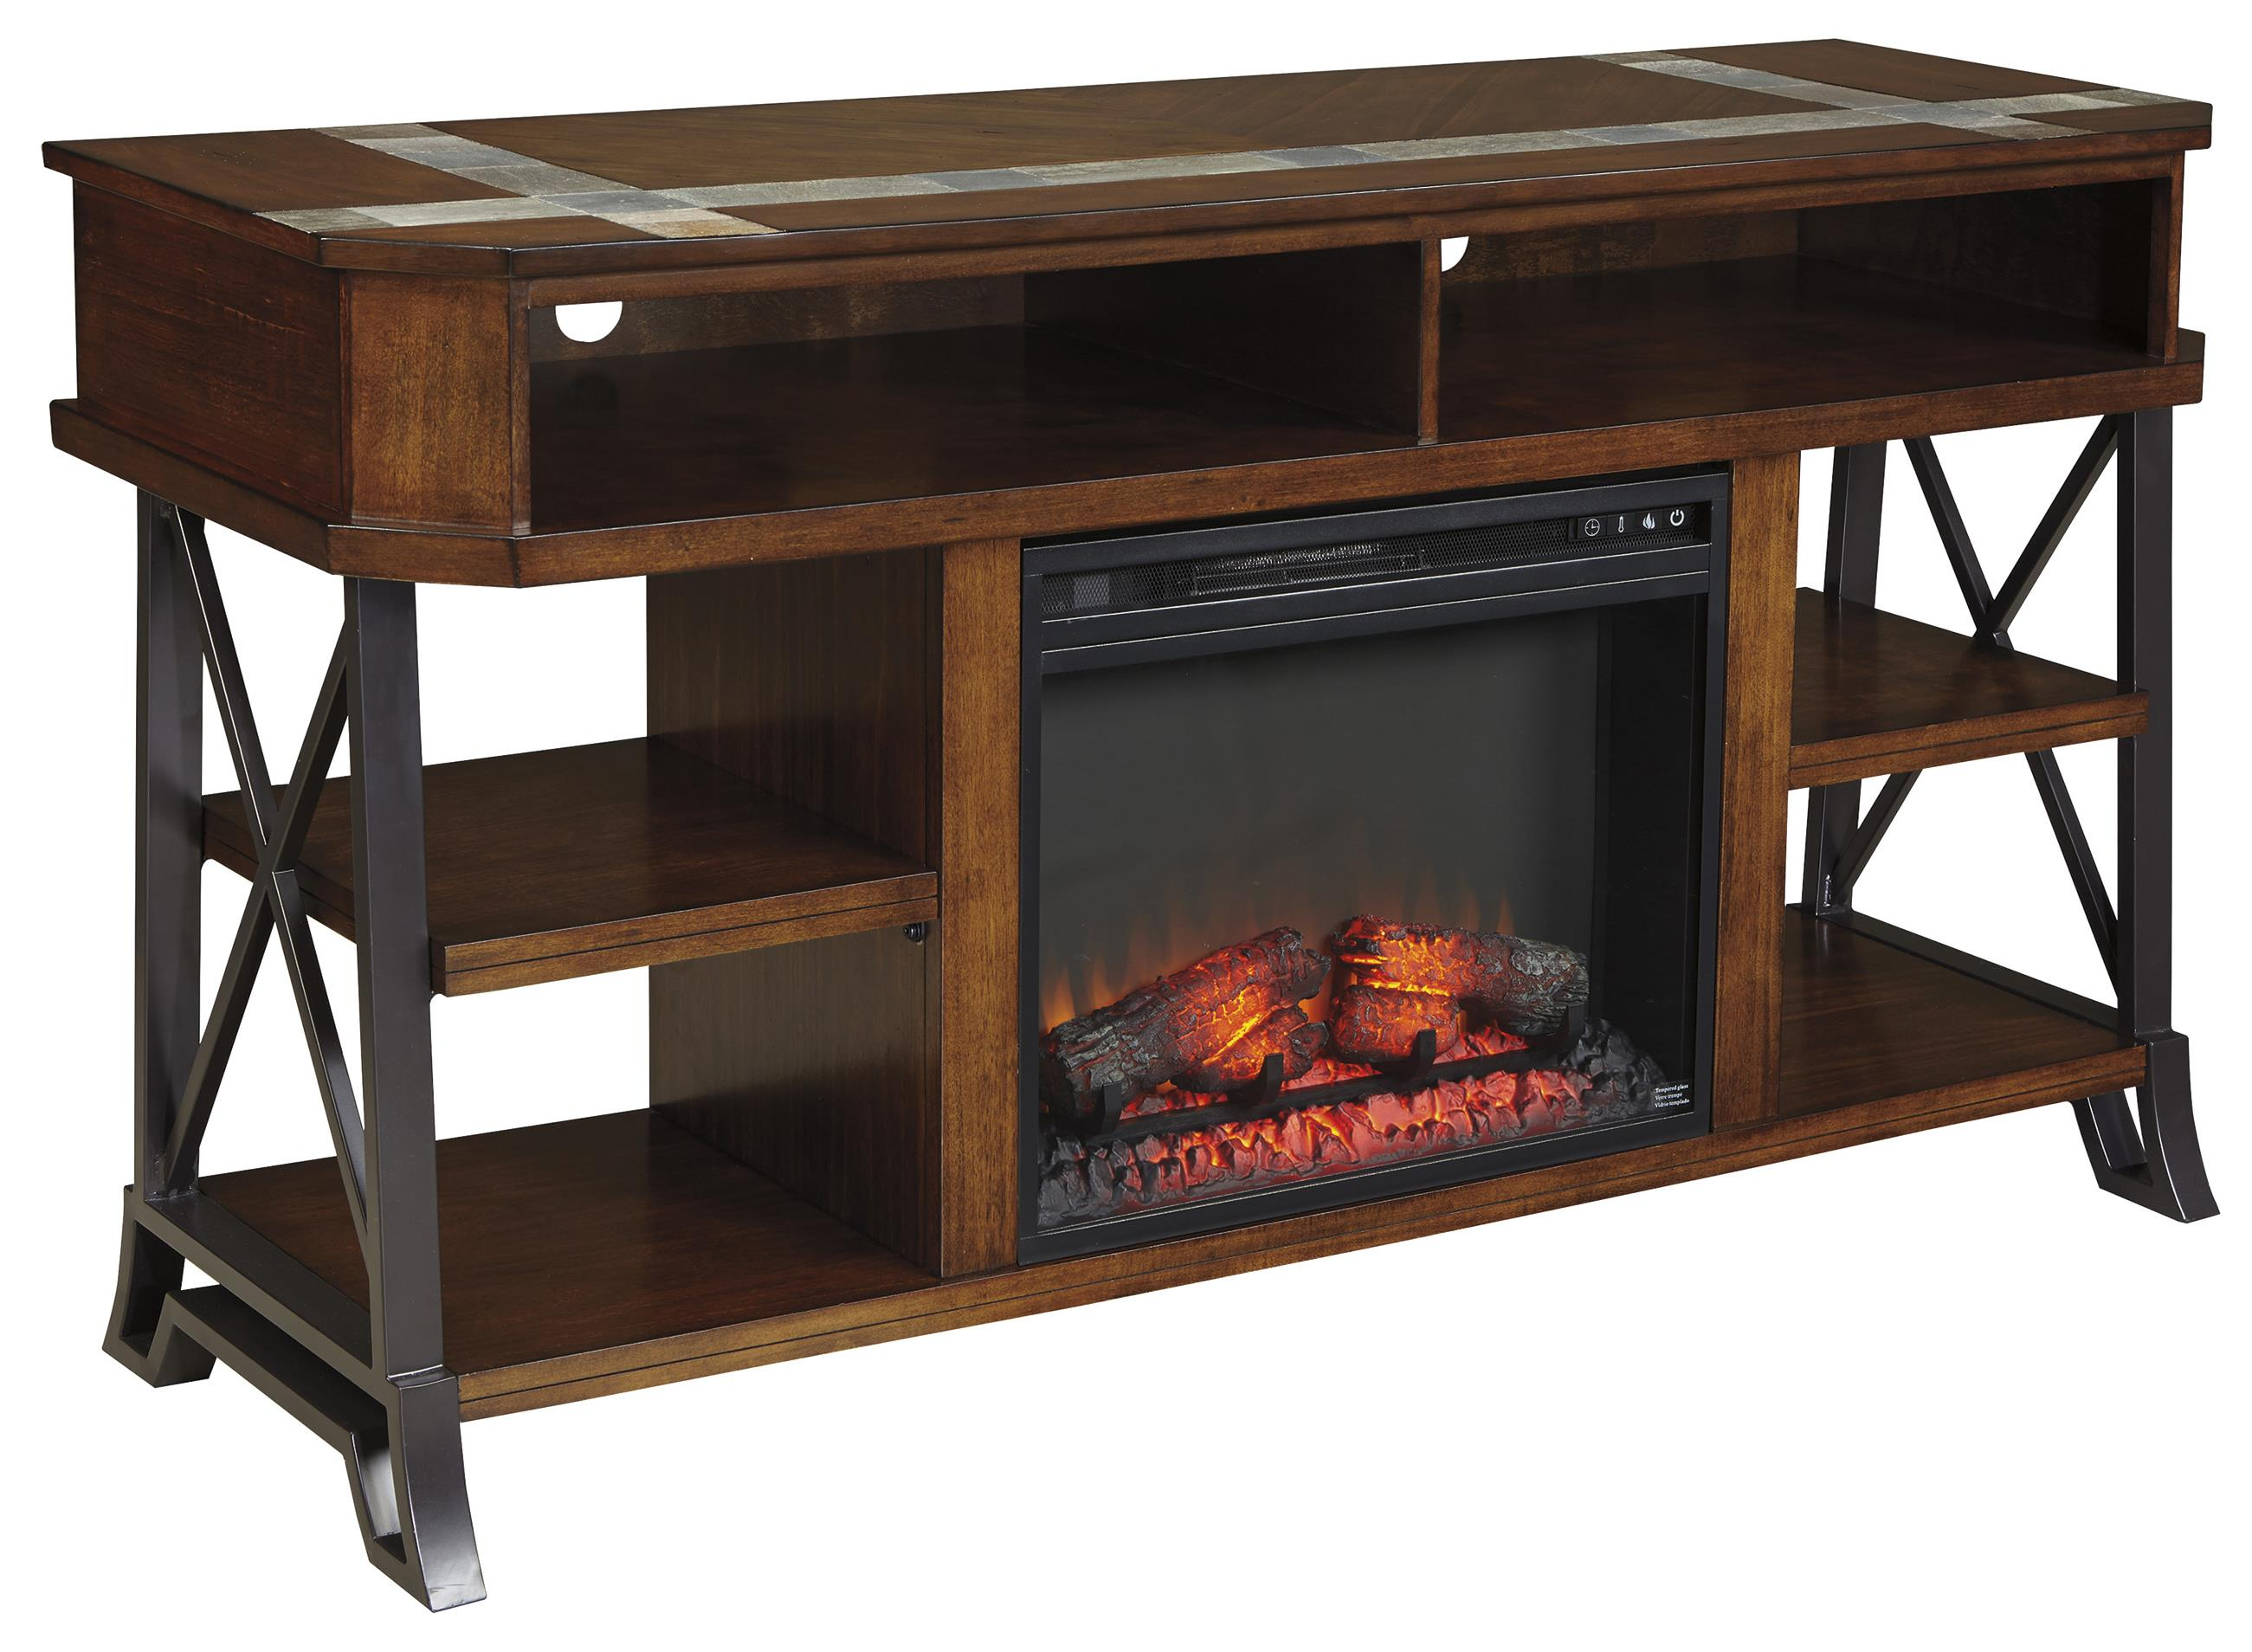 Signature Design by Ashley Vinasville TV Stand with Fireplace Insert - Item Number: W552-68+W100-01